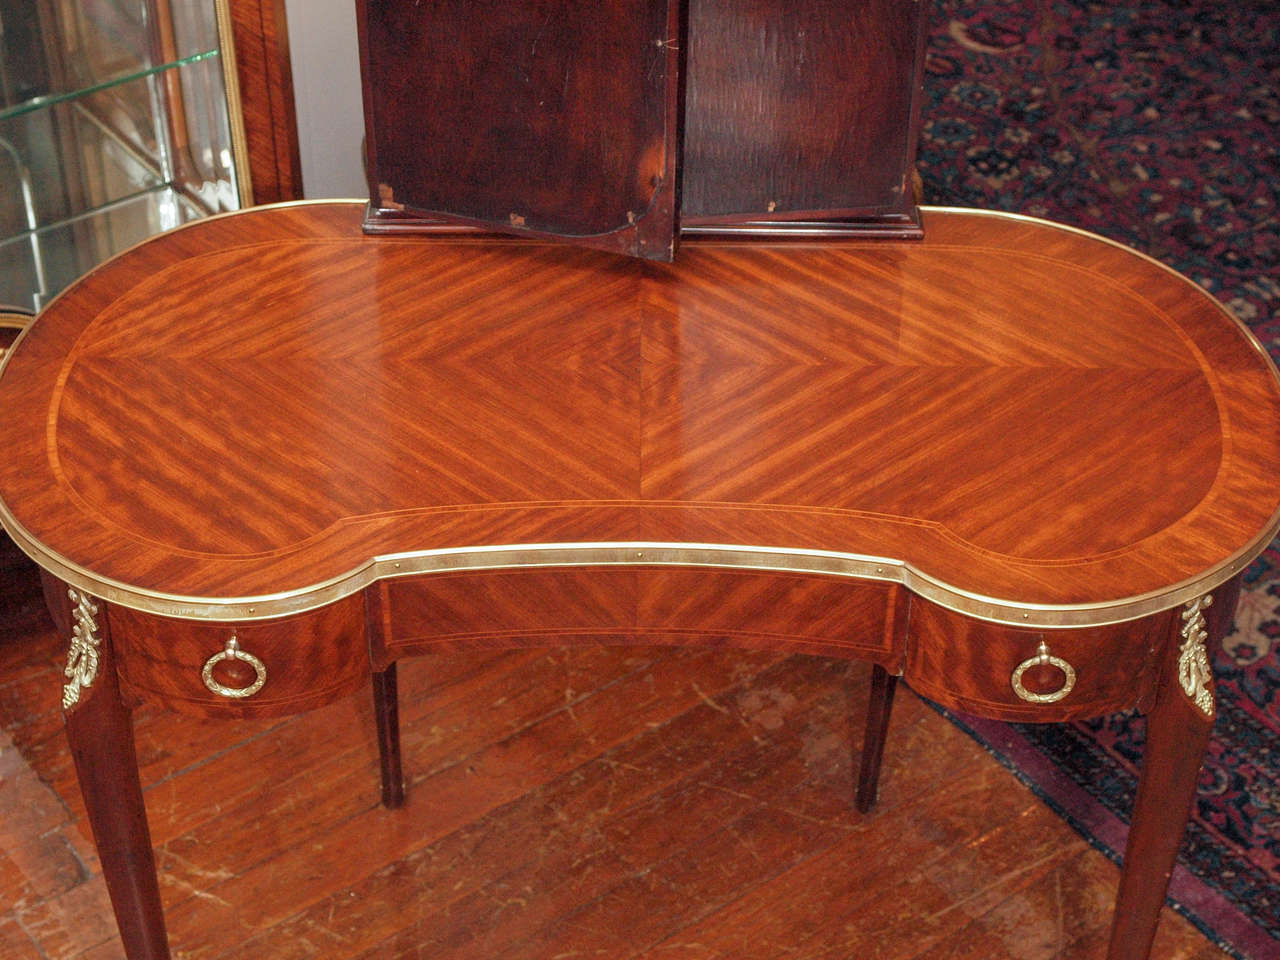 Antique French Ladies' Mahogany Dressing Table at 1stdibs